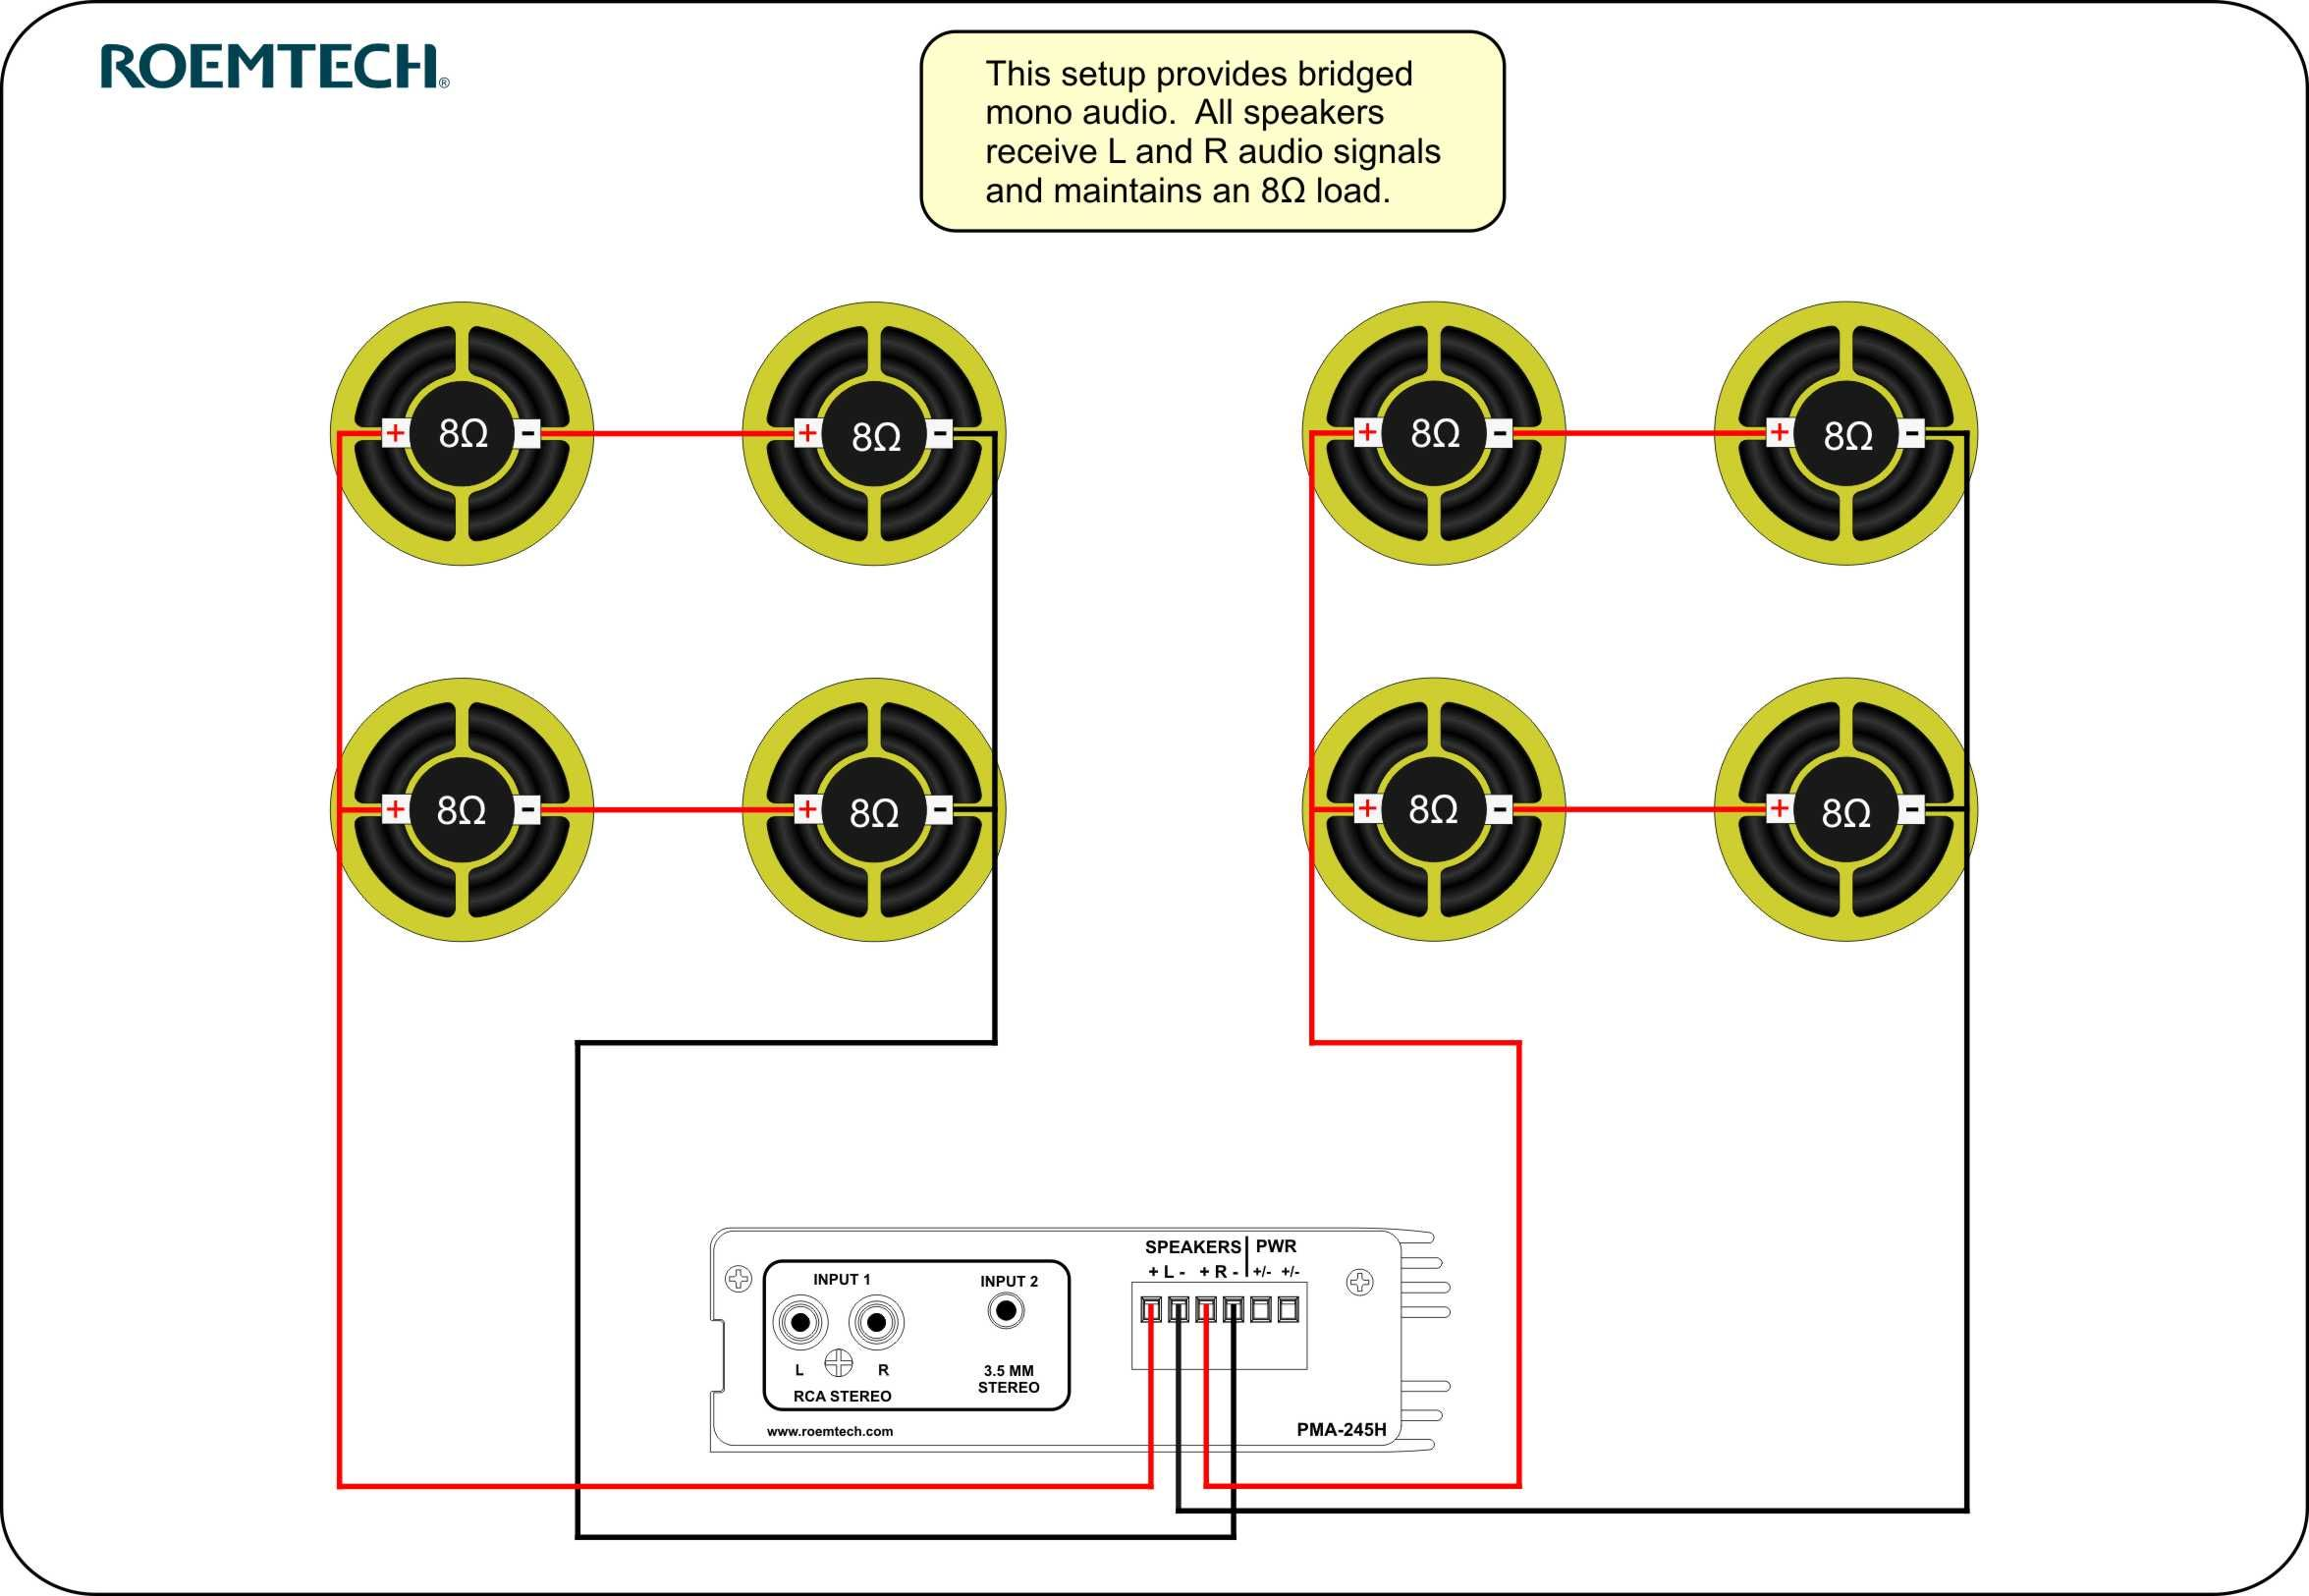 [SCHEMATICS_44OR]  Classroom Audio Systems - Multiple Speaker Wiring Diagram | Speaker wire,  Car audio installation, Subwoofer wiring | Impedance Speaker Wiring Diagrams |  | Pinterest